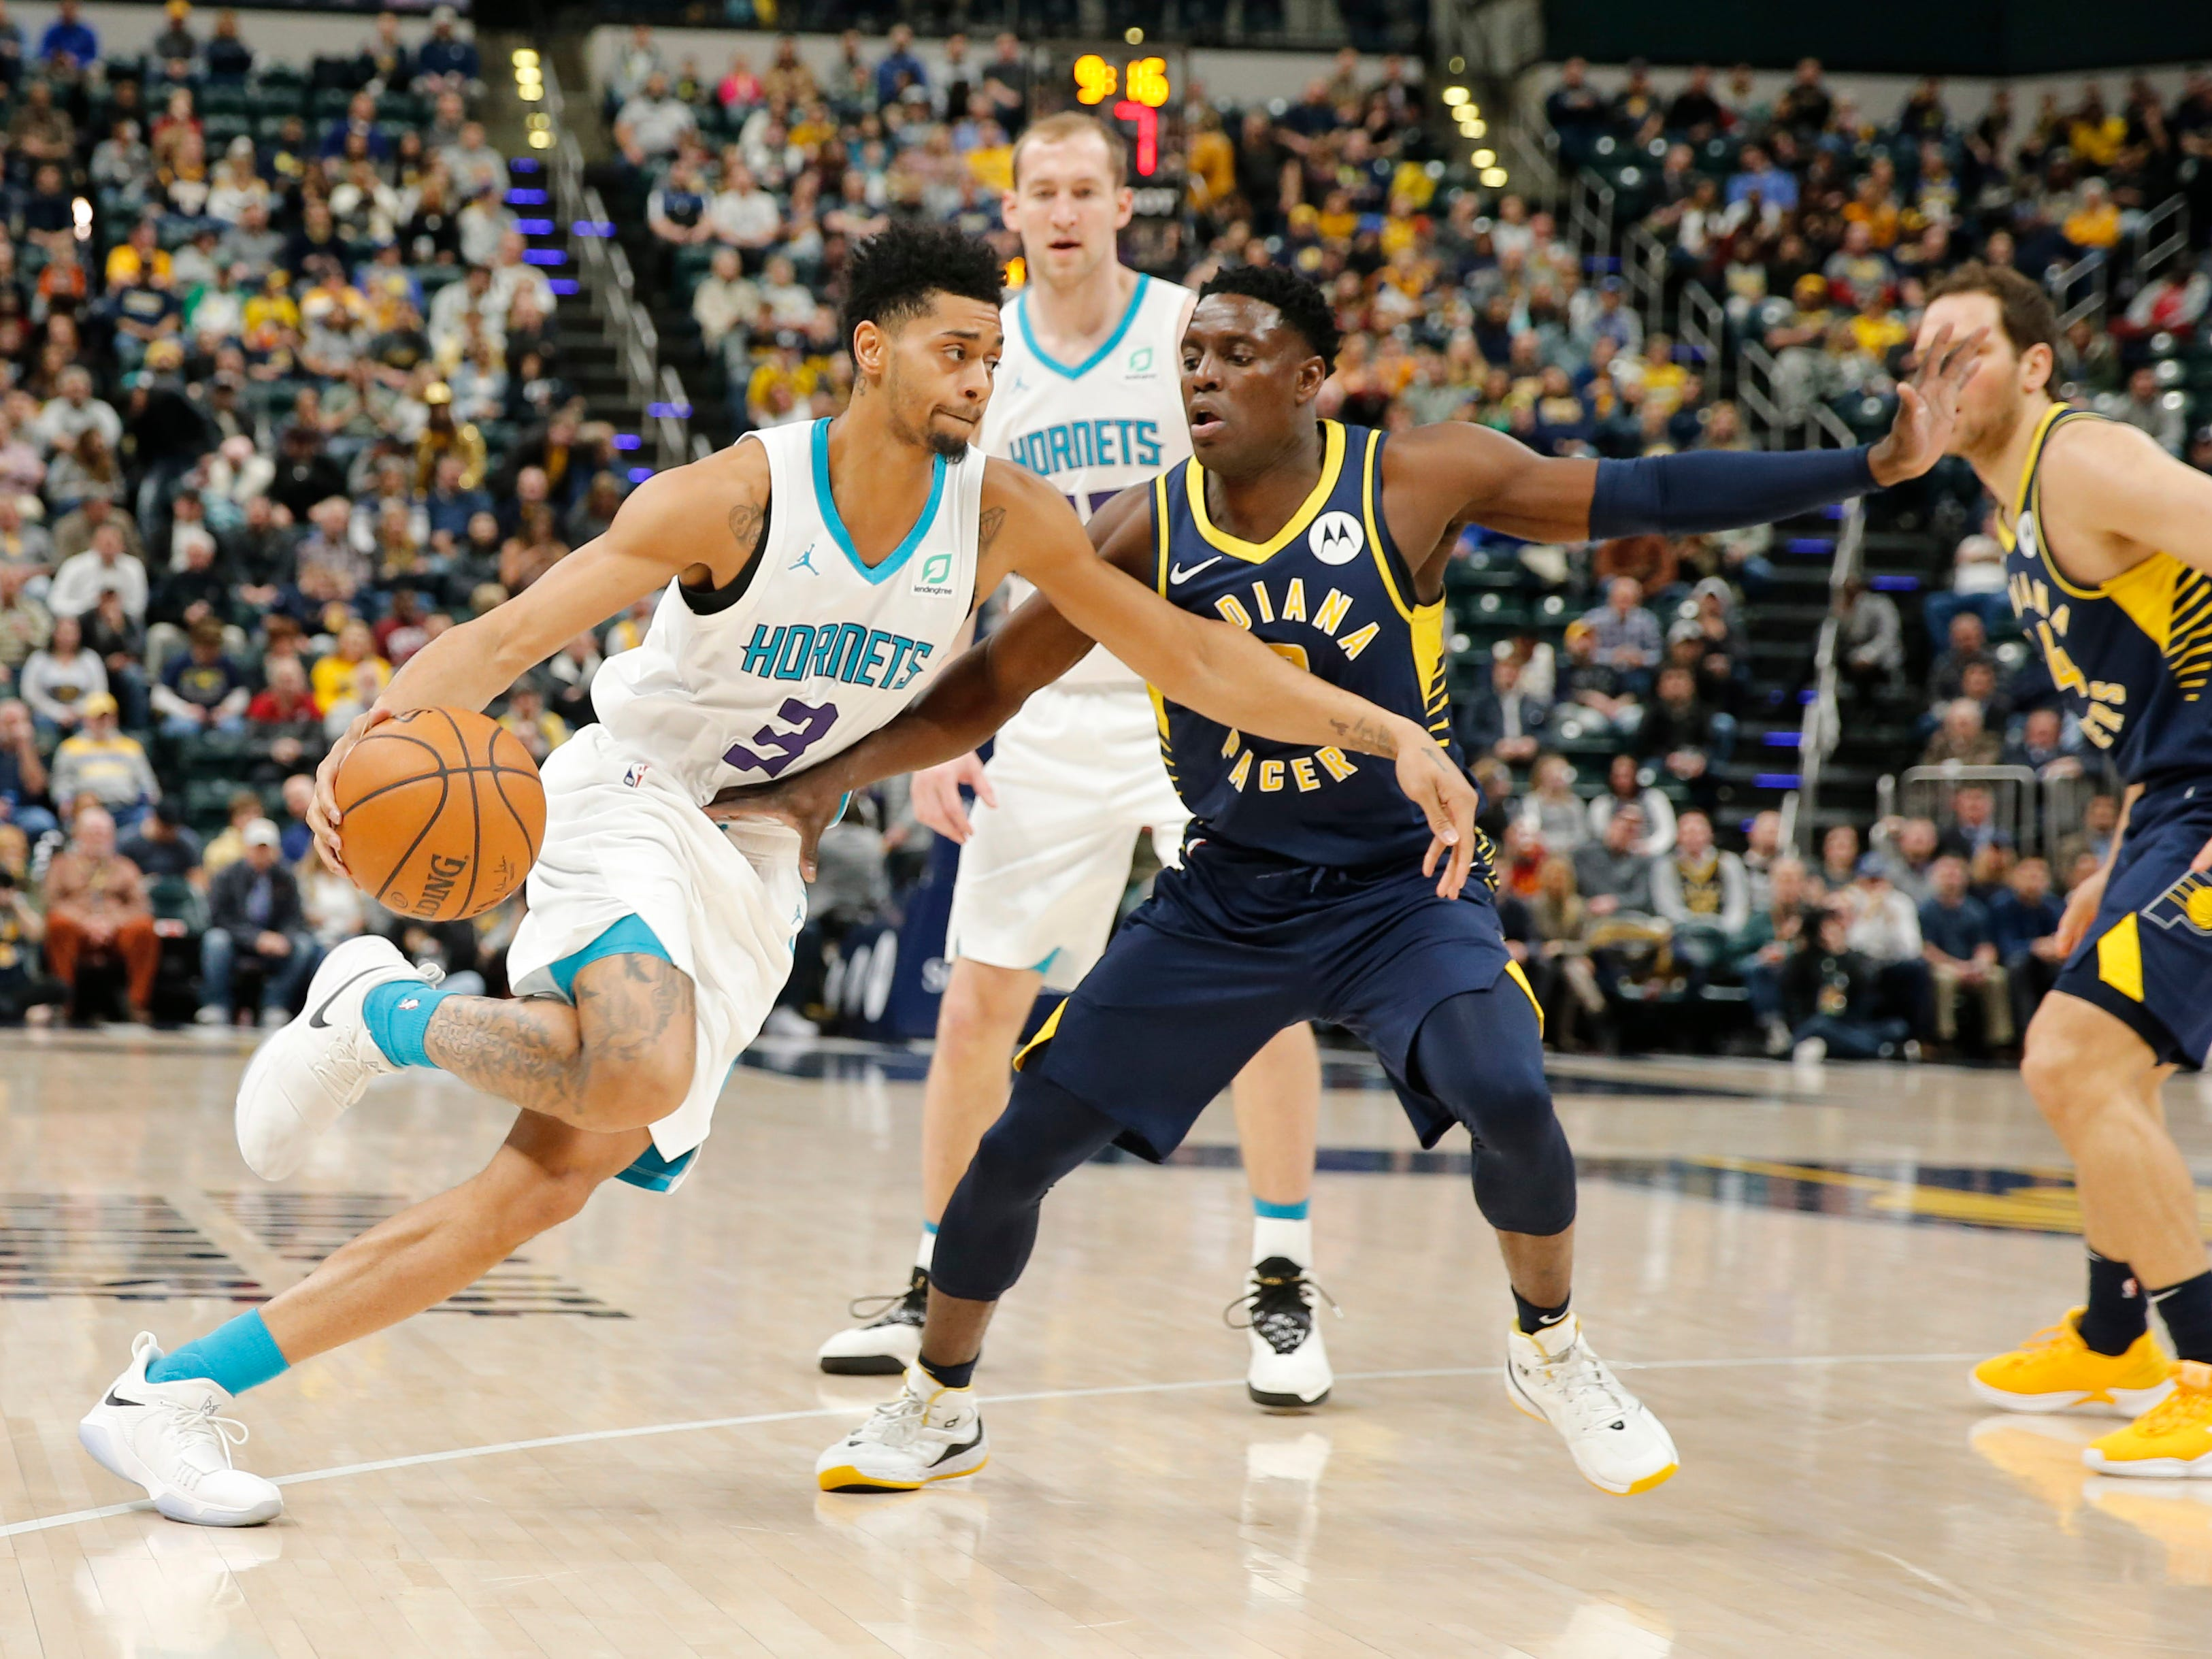 Feb 11, 2019; Indianapolis, IN, USA; Charlotte Hornets guard Jeremy Lamb (3) drives to the basket against Indiana Pacers guard Darren Collison (2) during the first quarter at Bankers Life Fieldhouse.